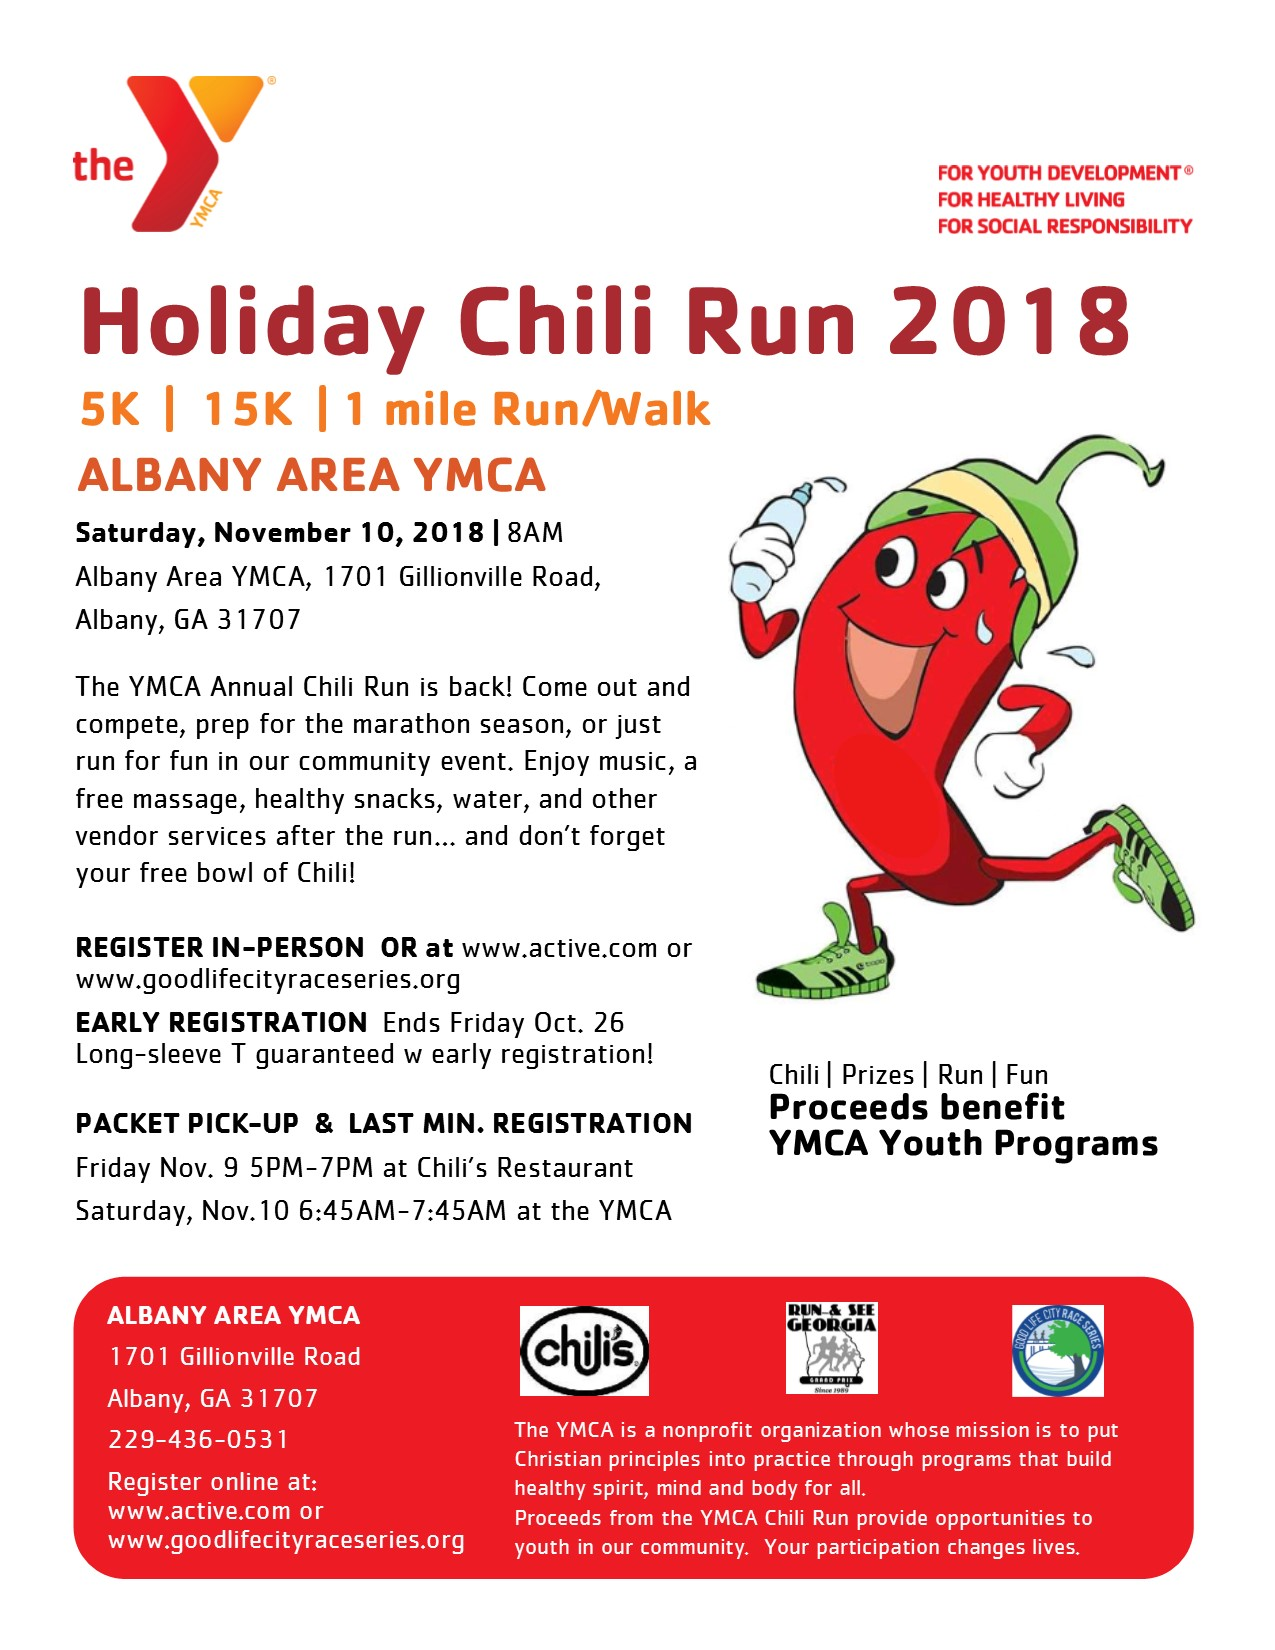 YMCA Holiday Chili Run